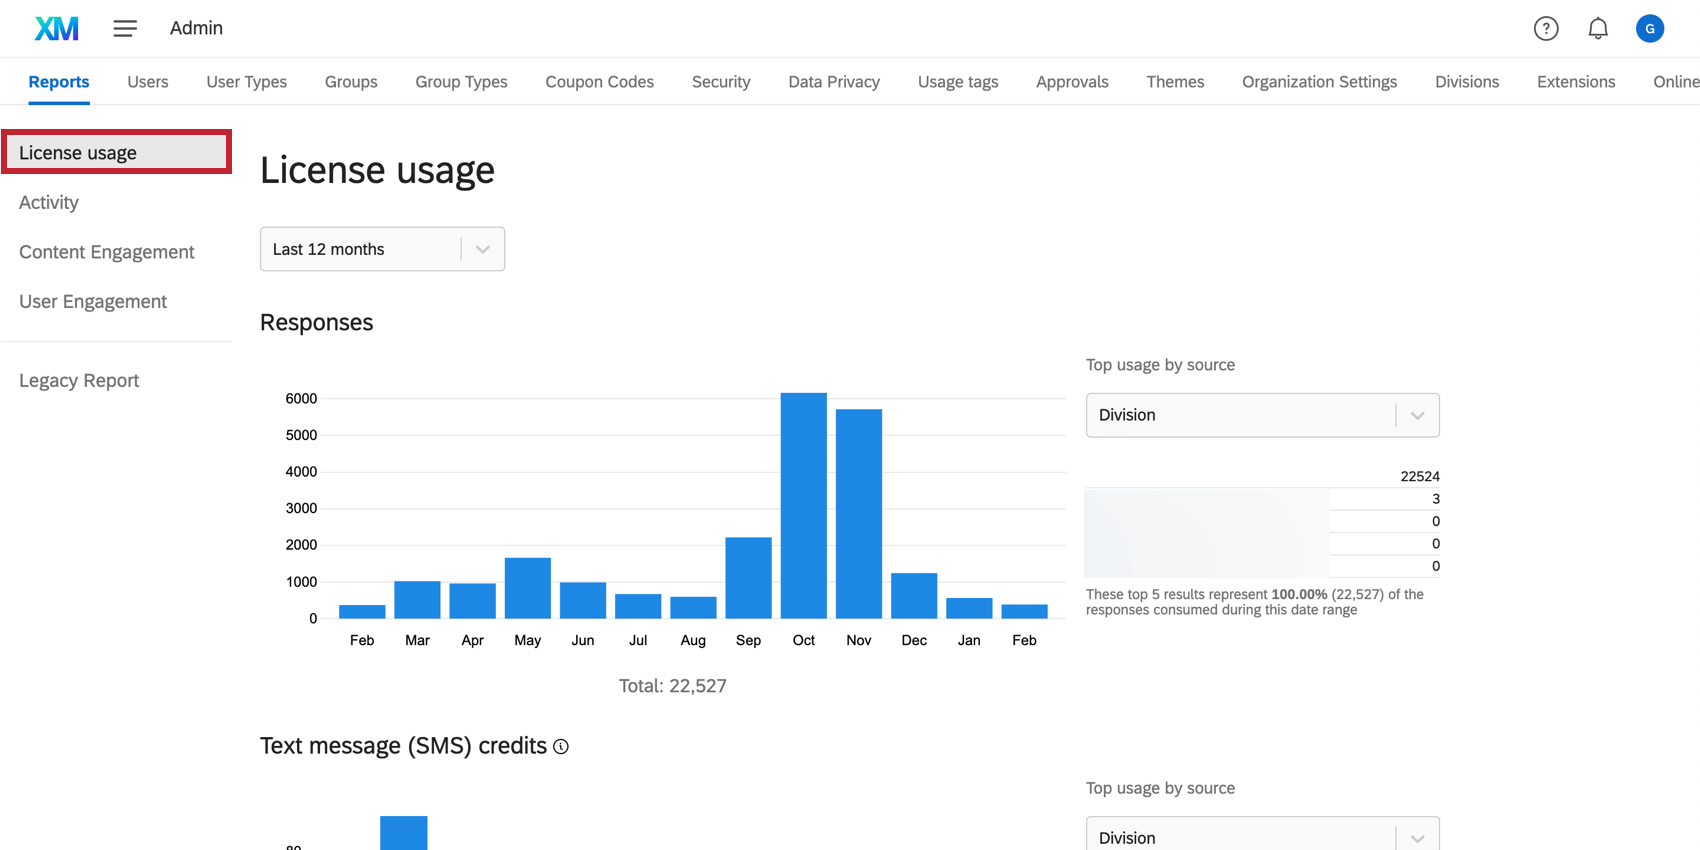 License usage tab in the Reports section